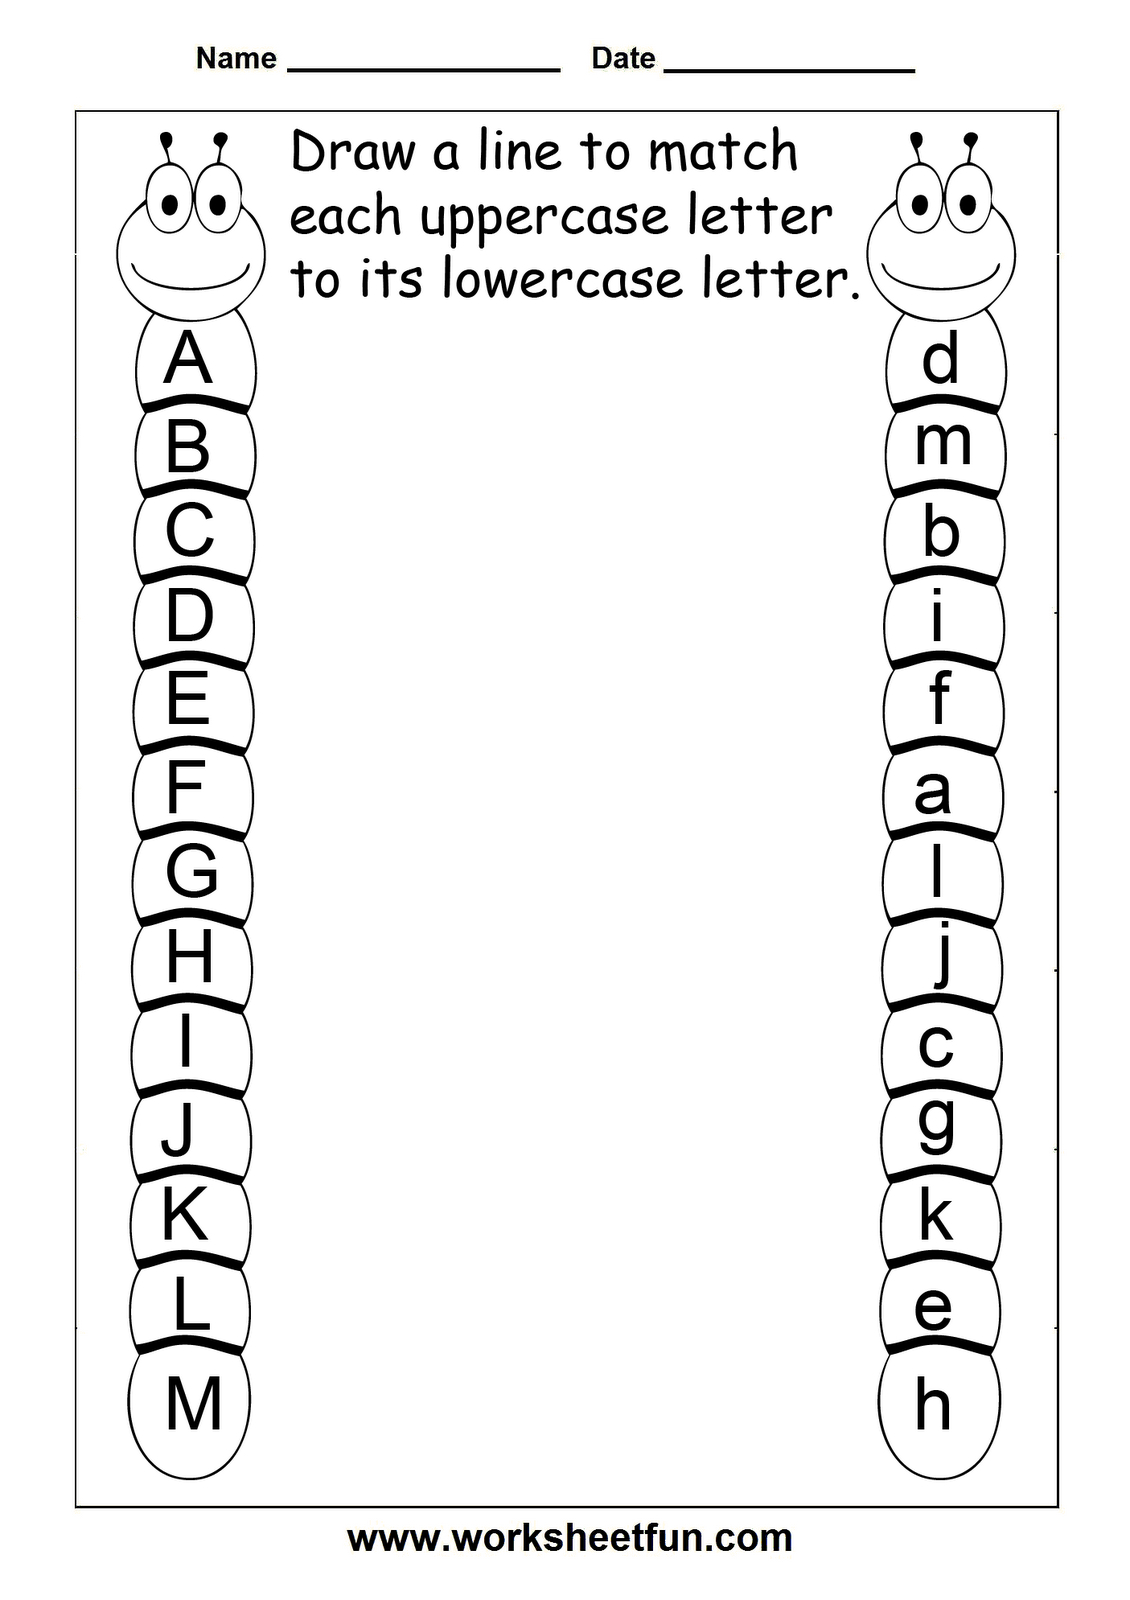 Free Printable Worksheets**** Prek-4Th Bunches Of Cute Stuff Love - Free Printable Worksheets On Africa